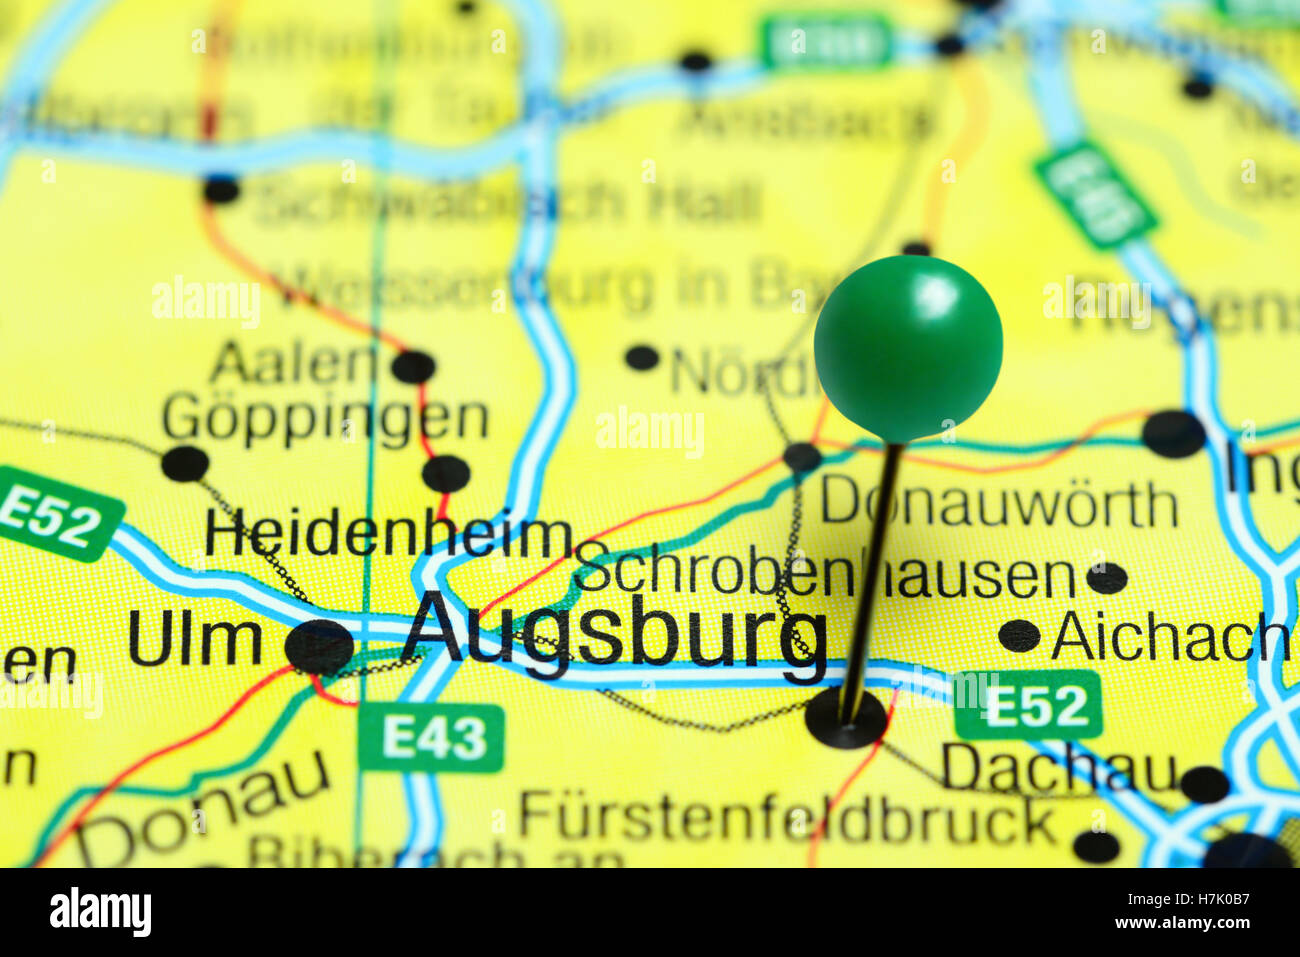 Augsburg Pinned On A Map Of Germany Stock Photo 125192571 Alamy